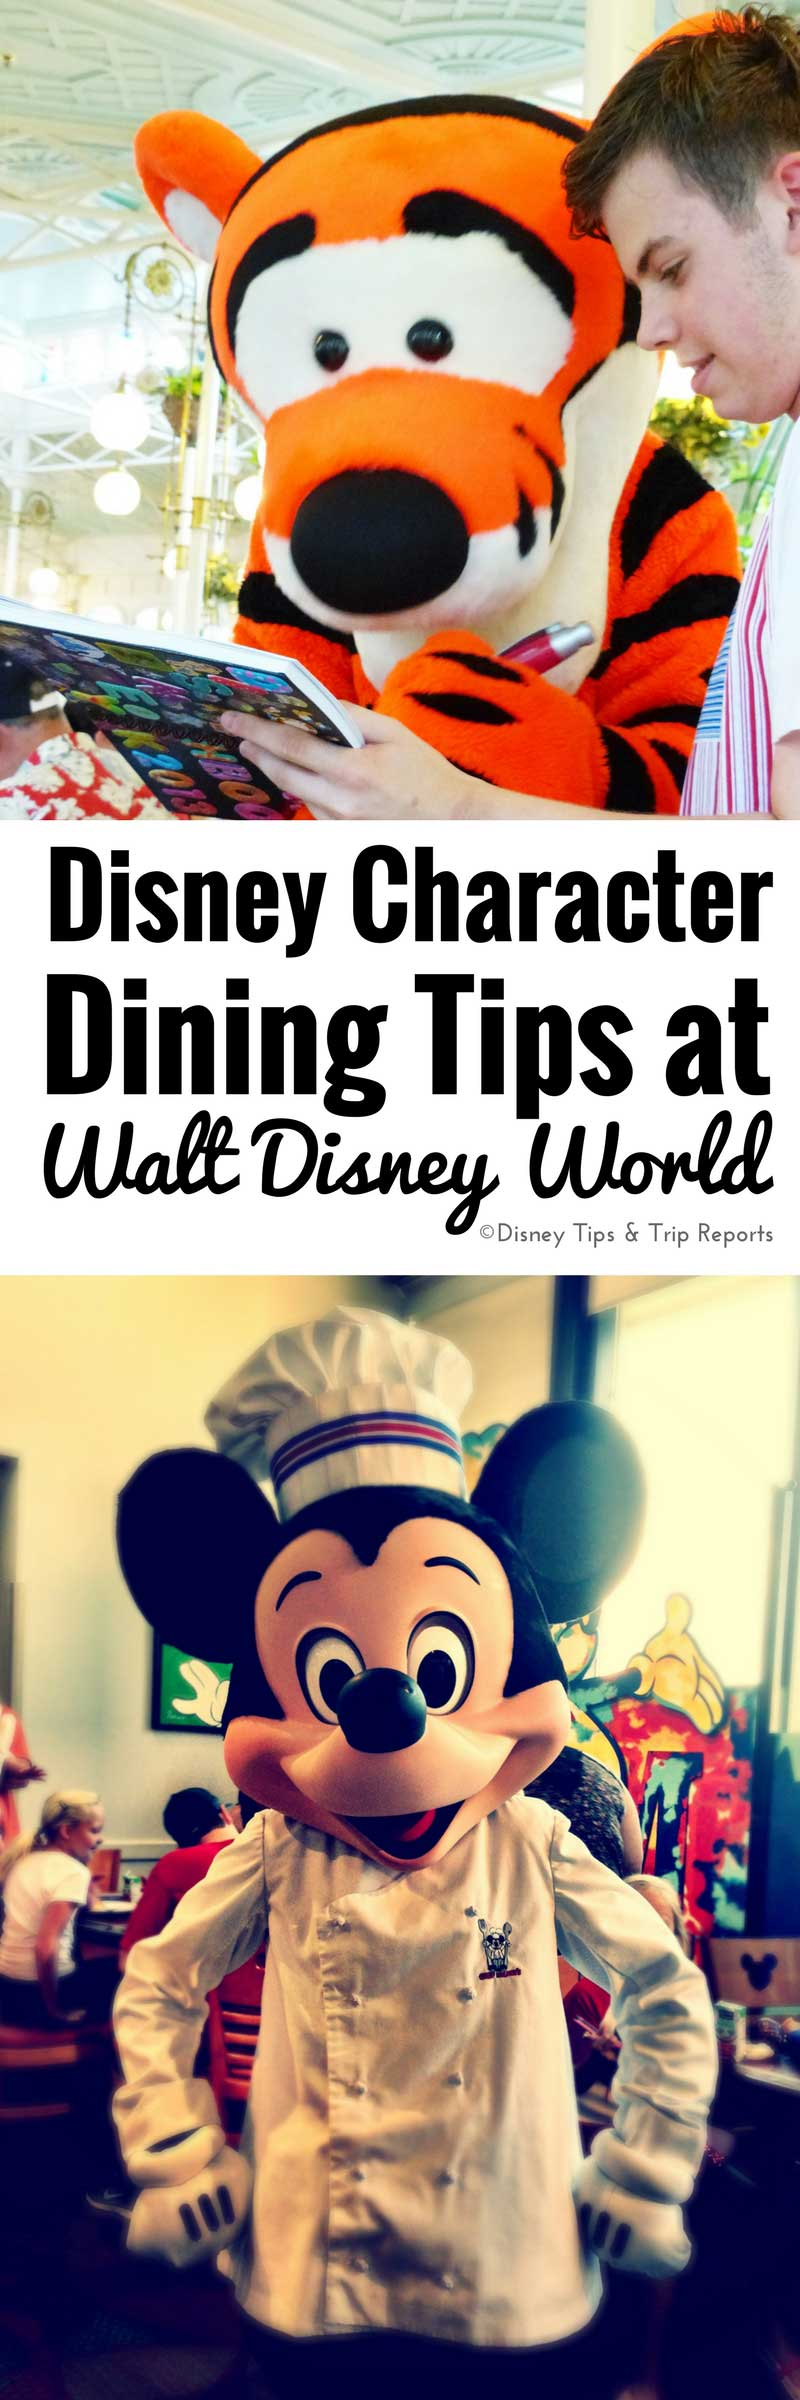 Disney Character Dining Tips! Don't visit Walt Disney World without these top tips!